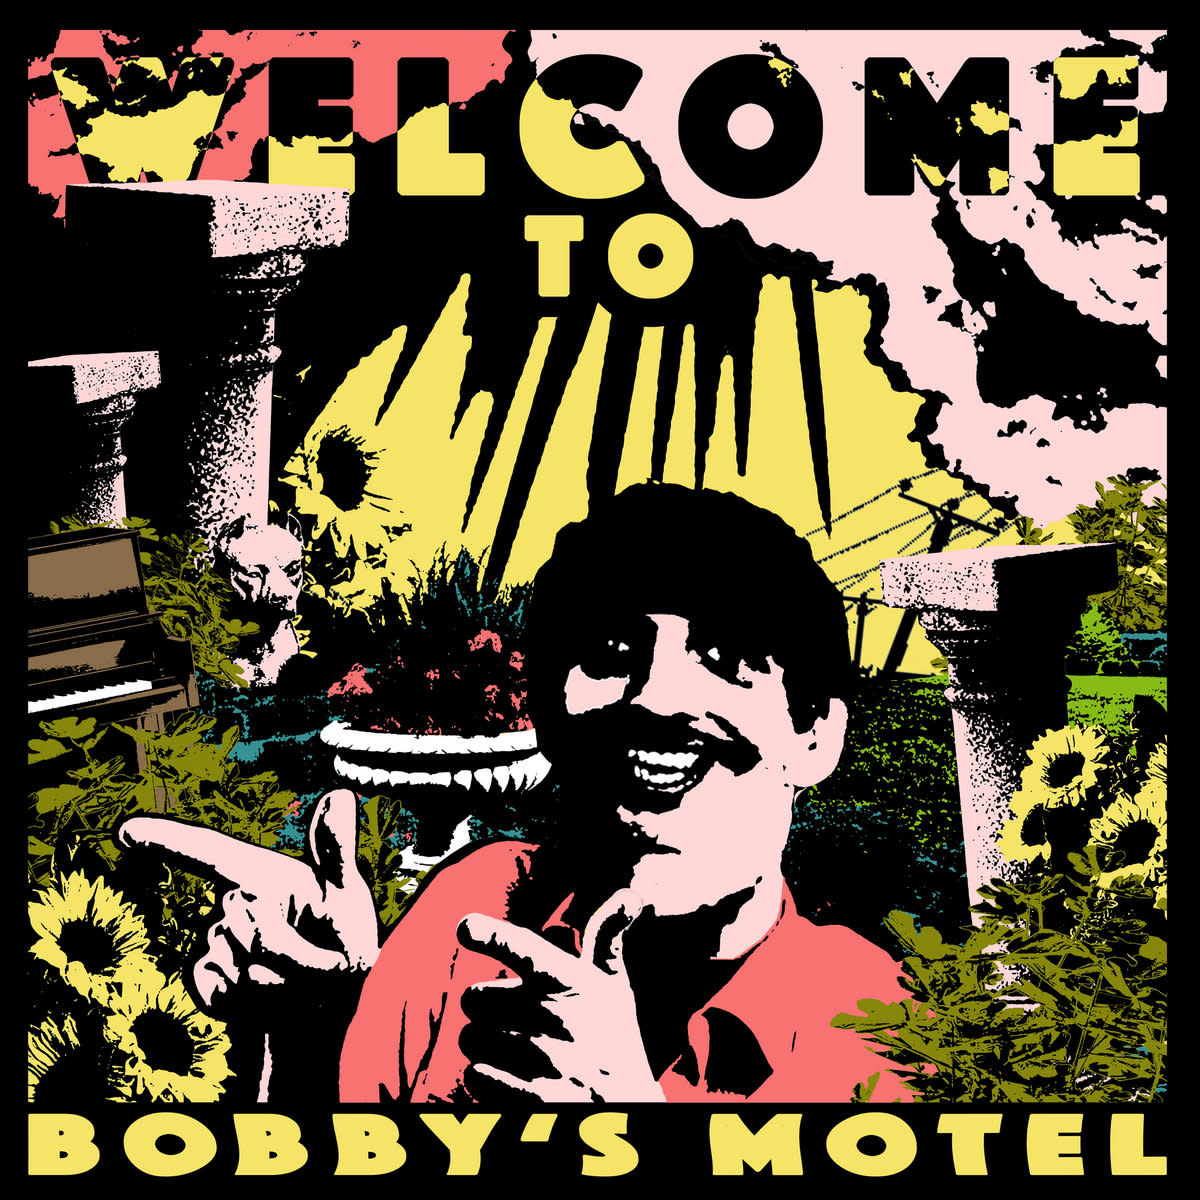 Pottery • Welcome To Bobby's Motel-1